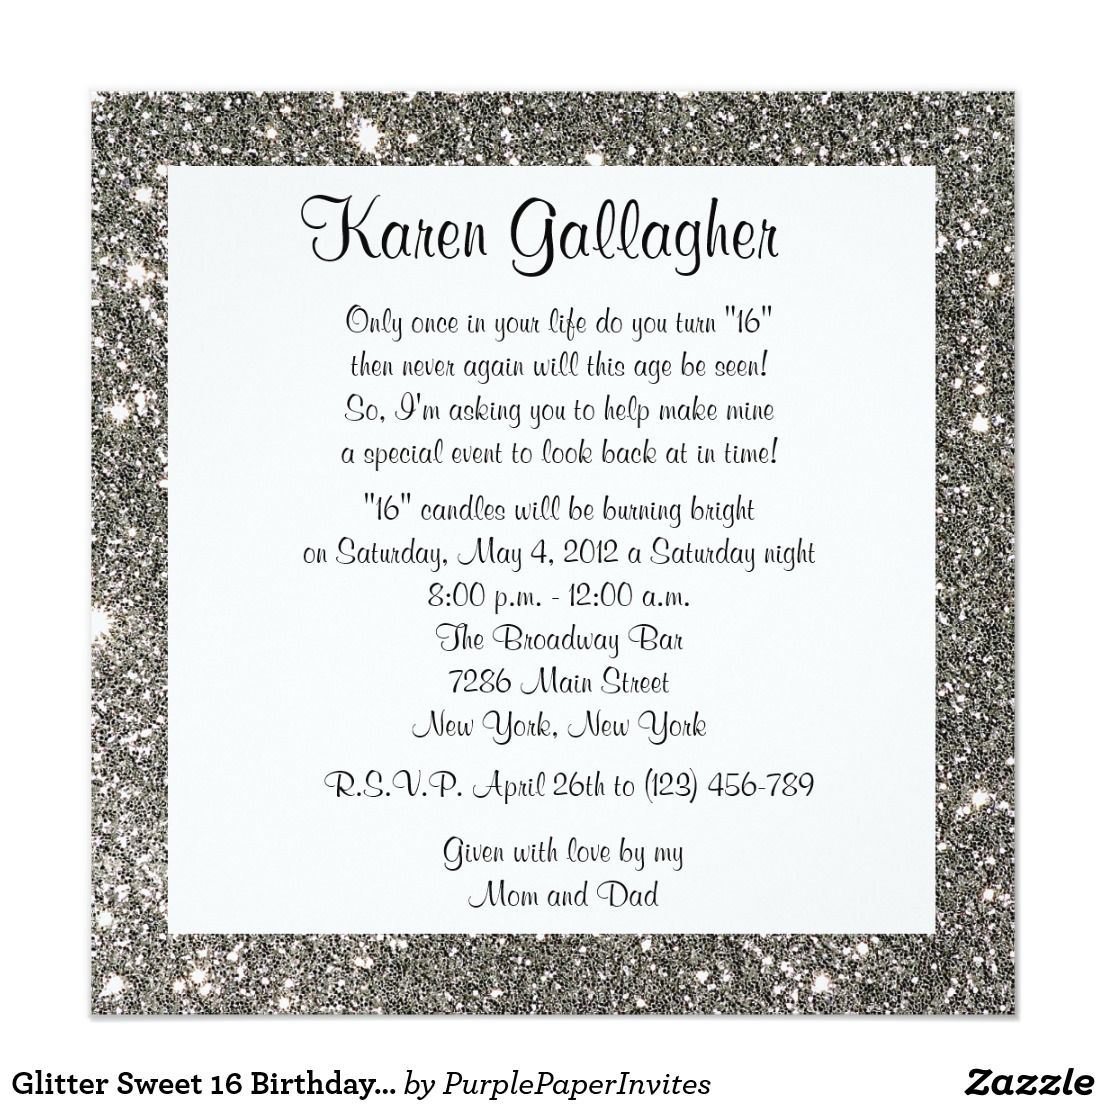 Glitter Sweet 16 Birthday Party Custom Invitation 75th birthday